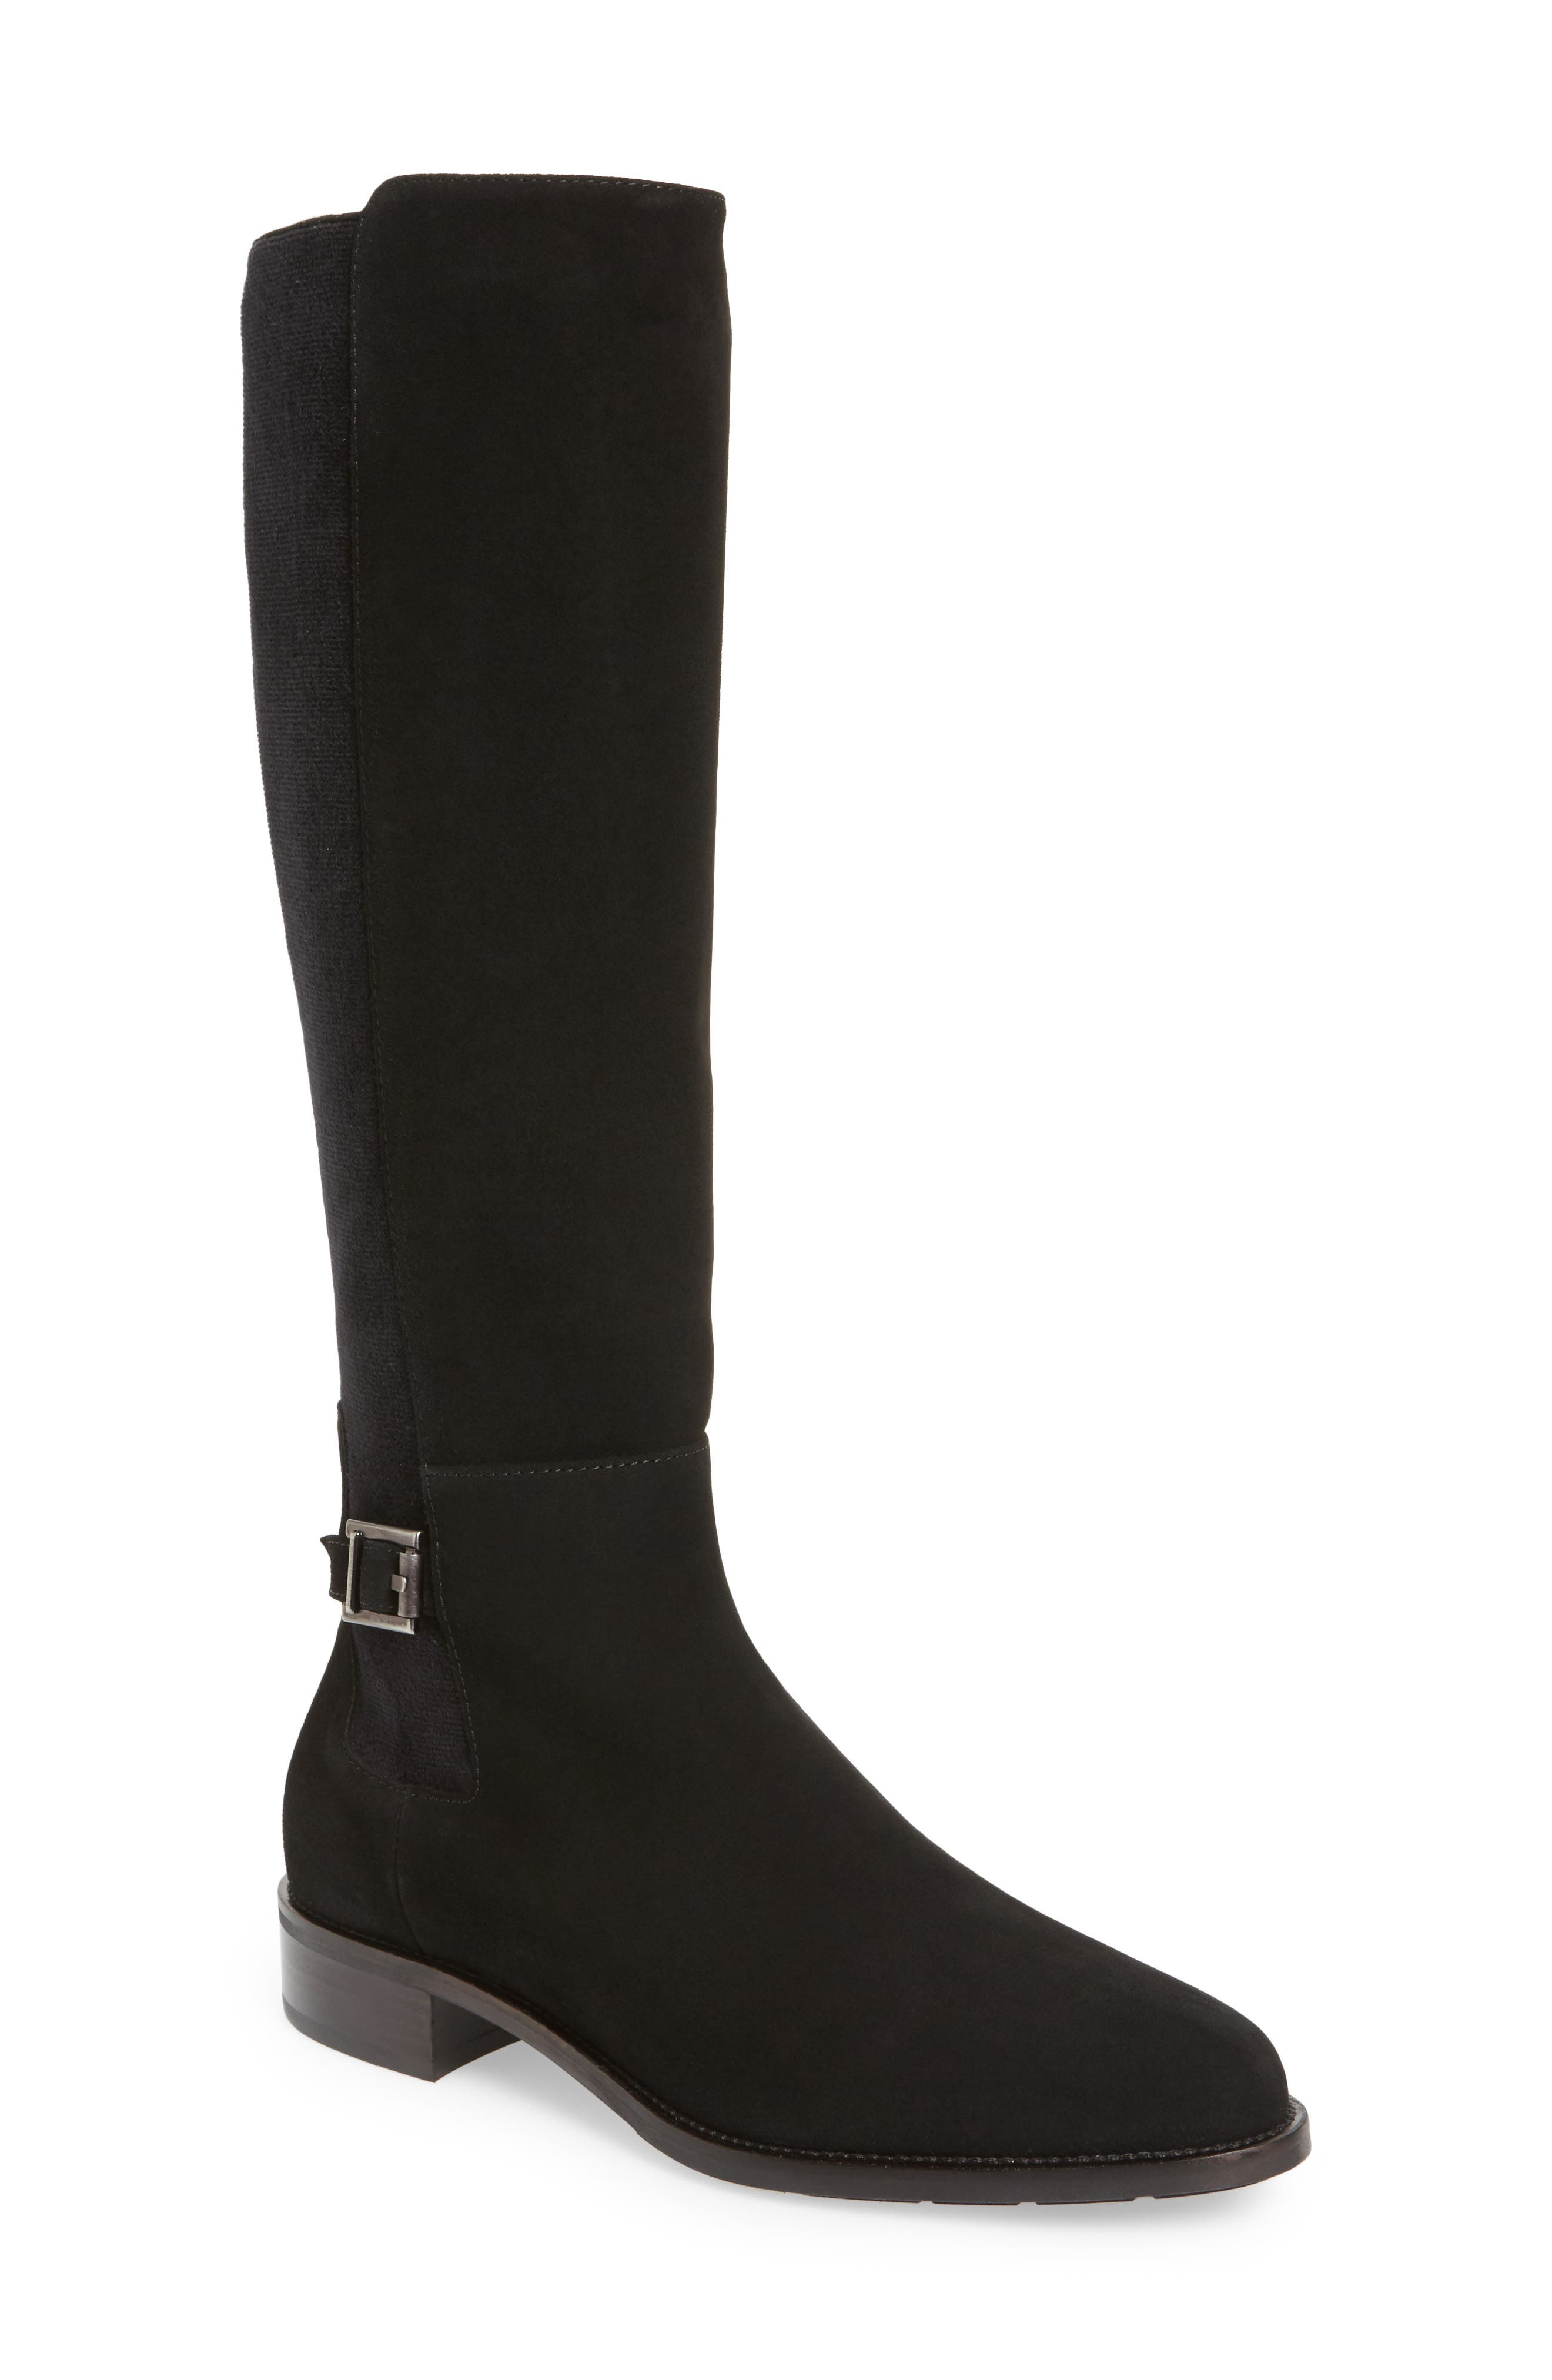 Aquatalia Noella Weatherproof Tall Boot (Women)